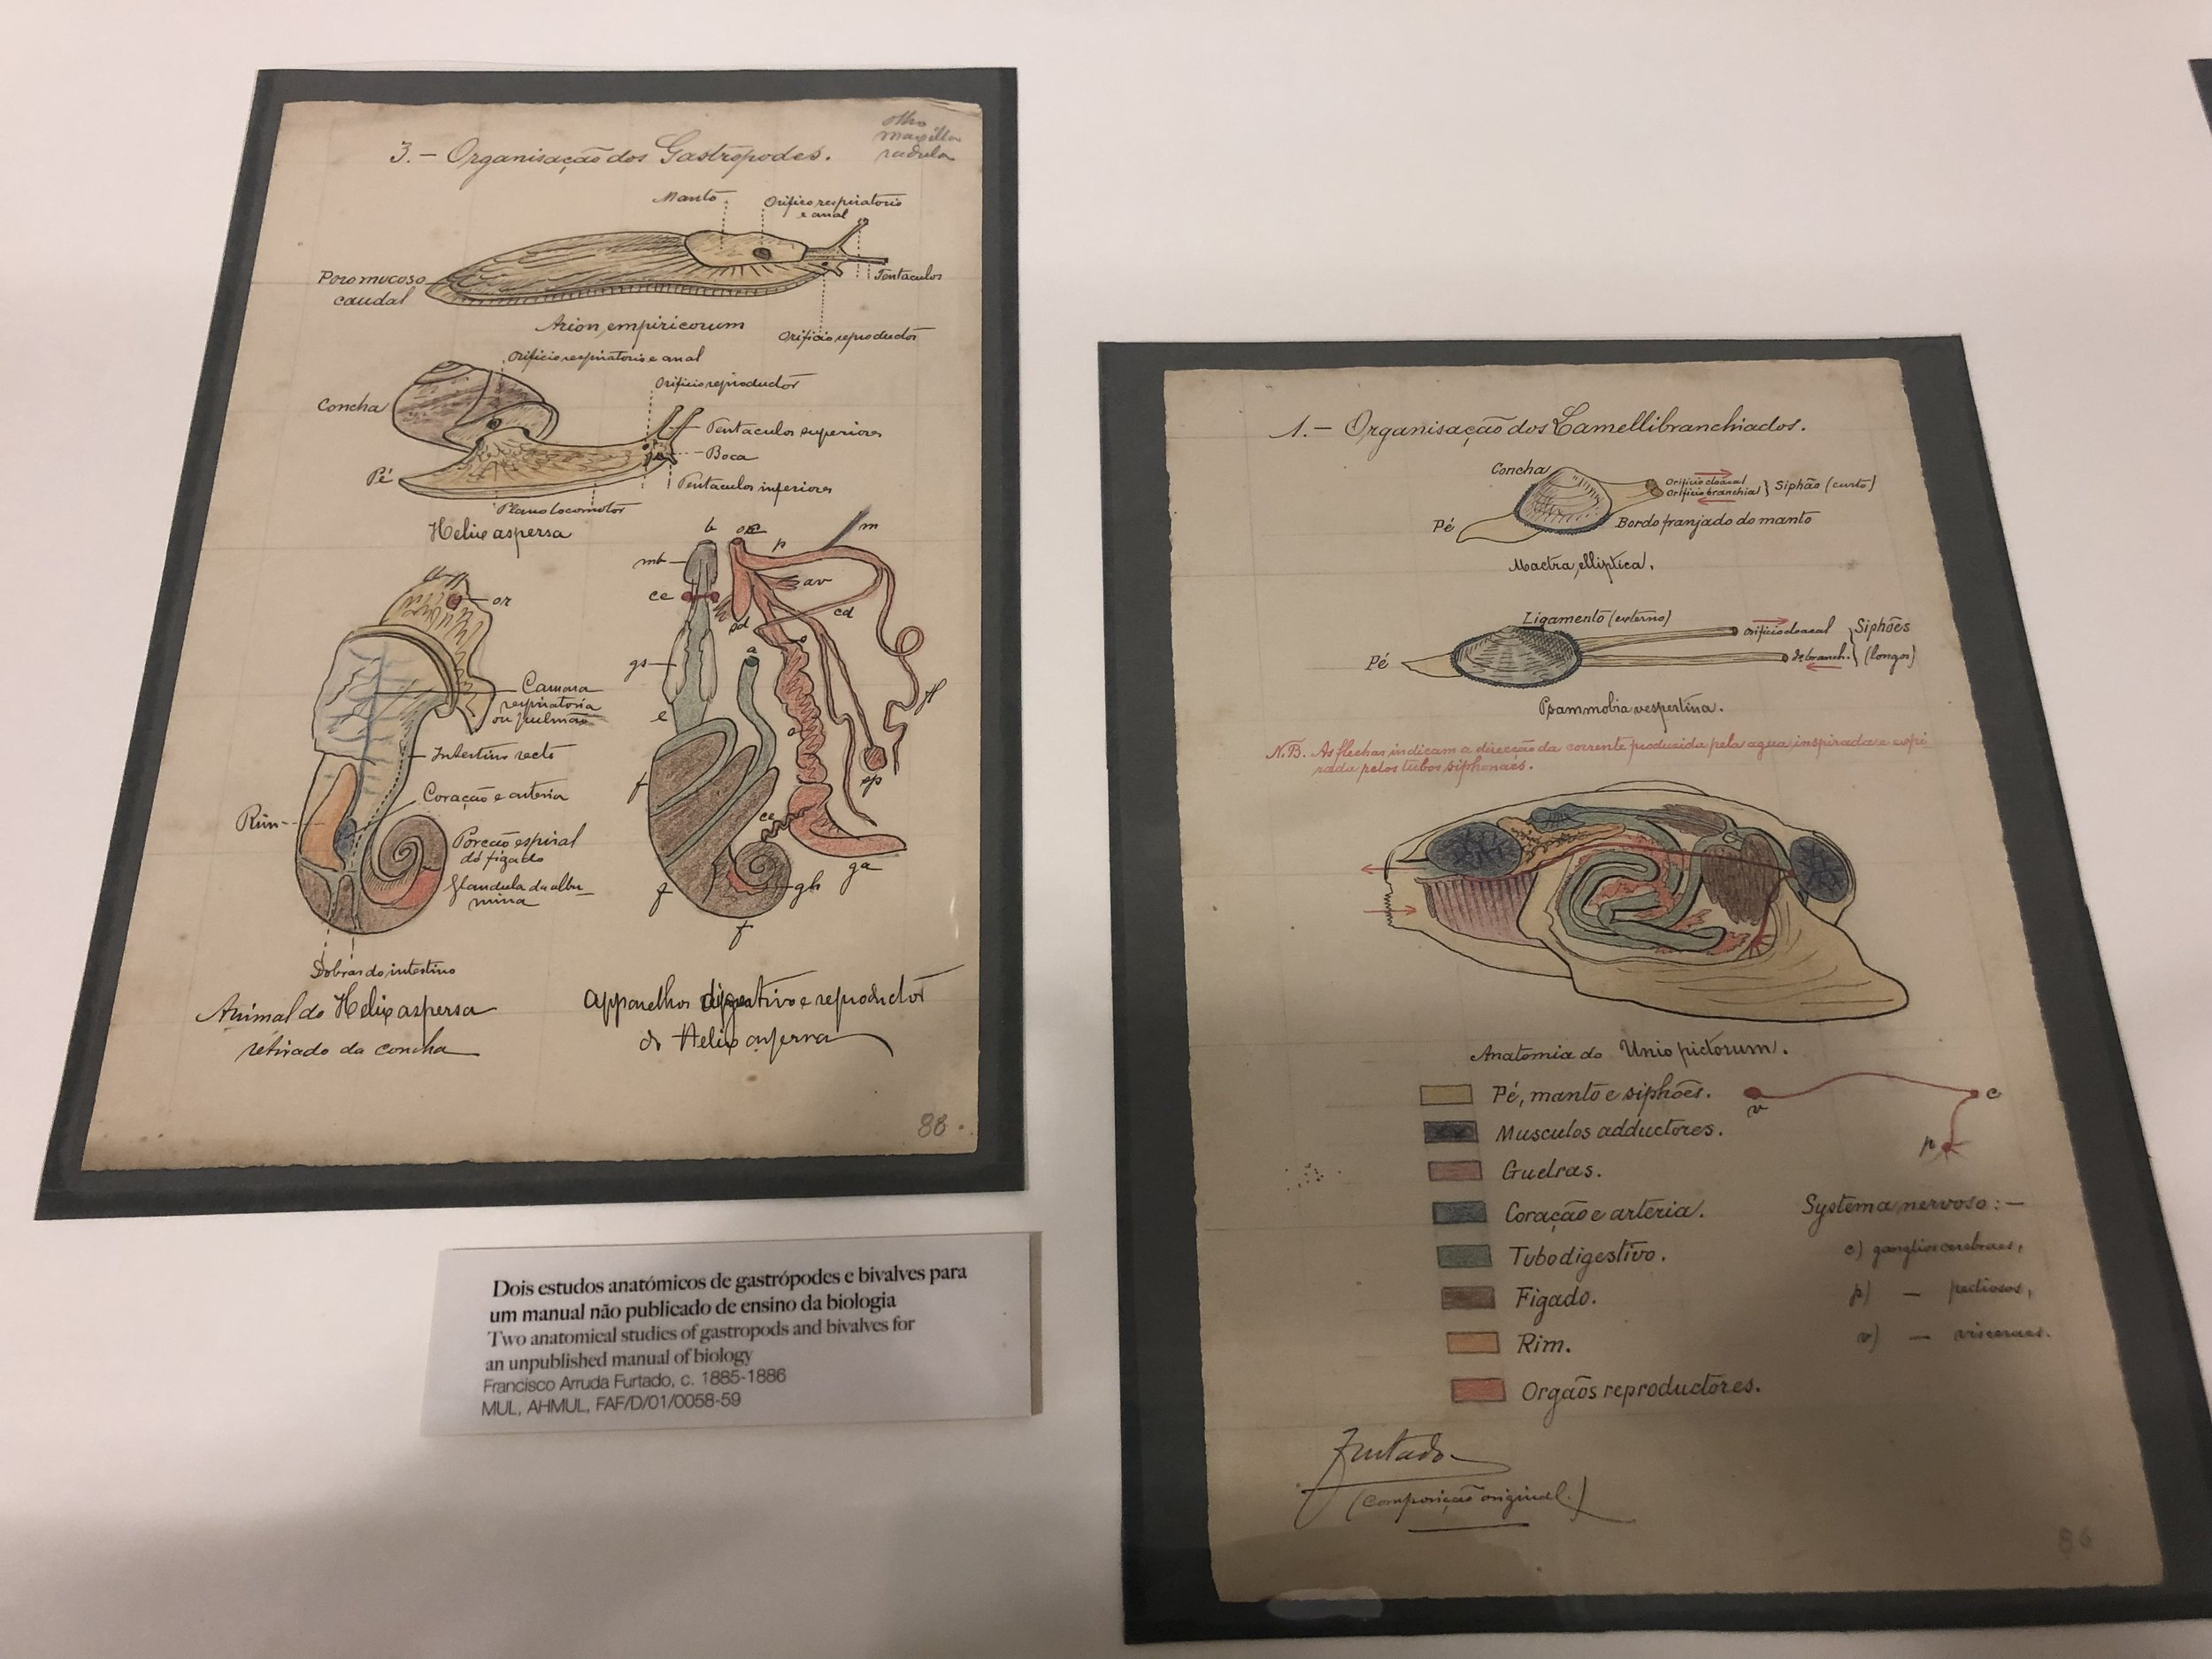 Two anatomical studies of gastropods and bivalves for an unpublished manual in biology from c. 1885-1886 | Credit: Talita Bateman